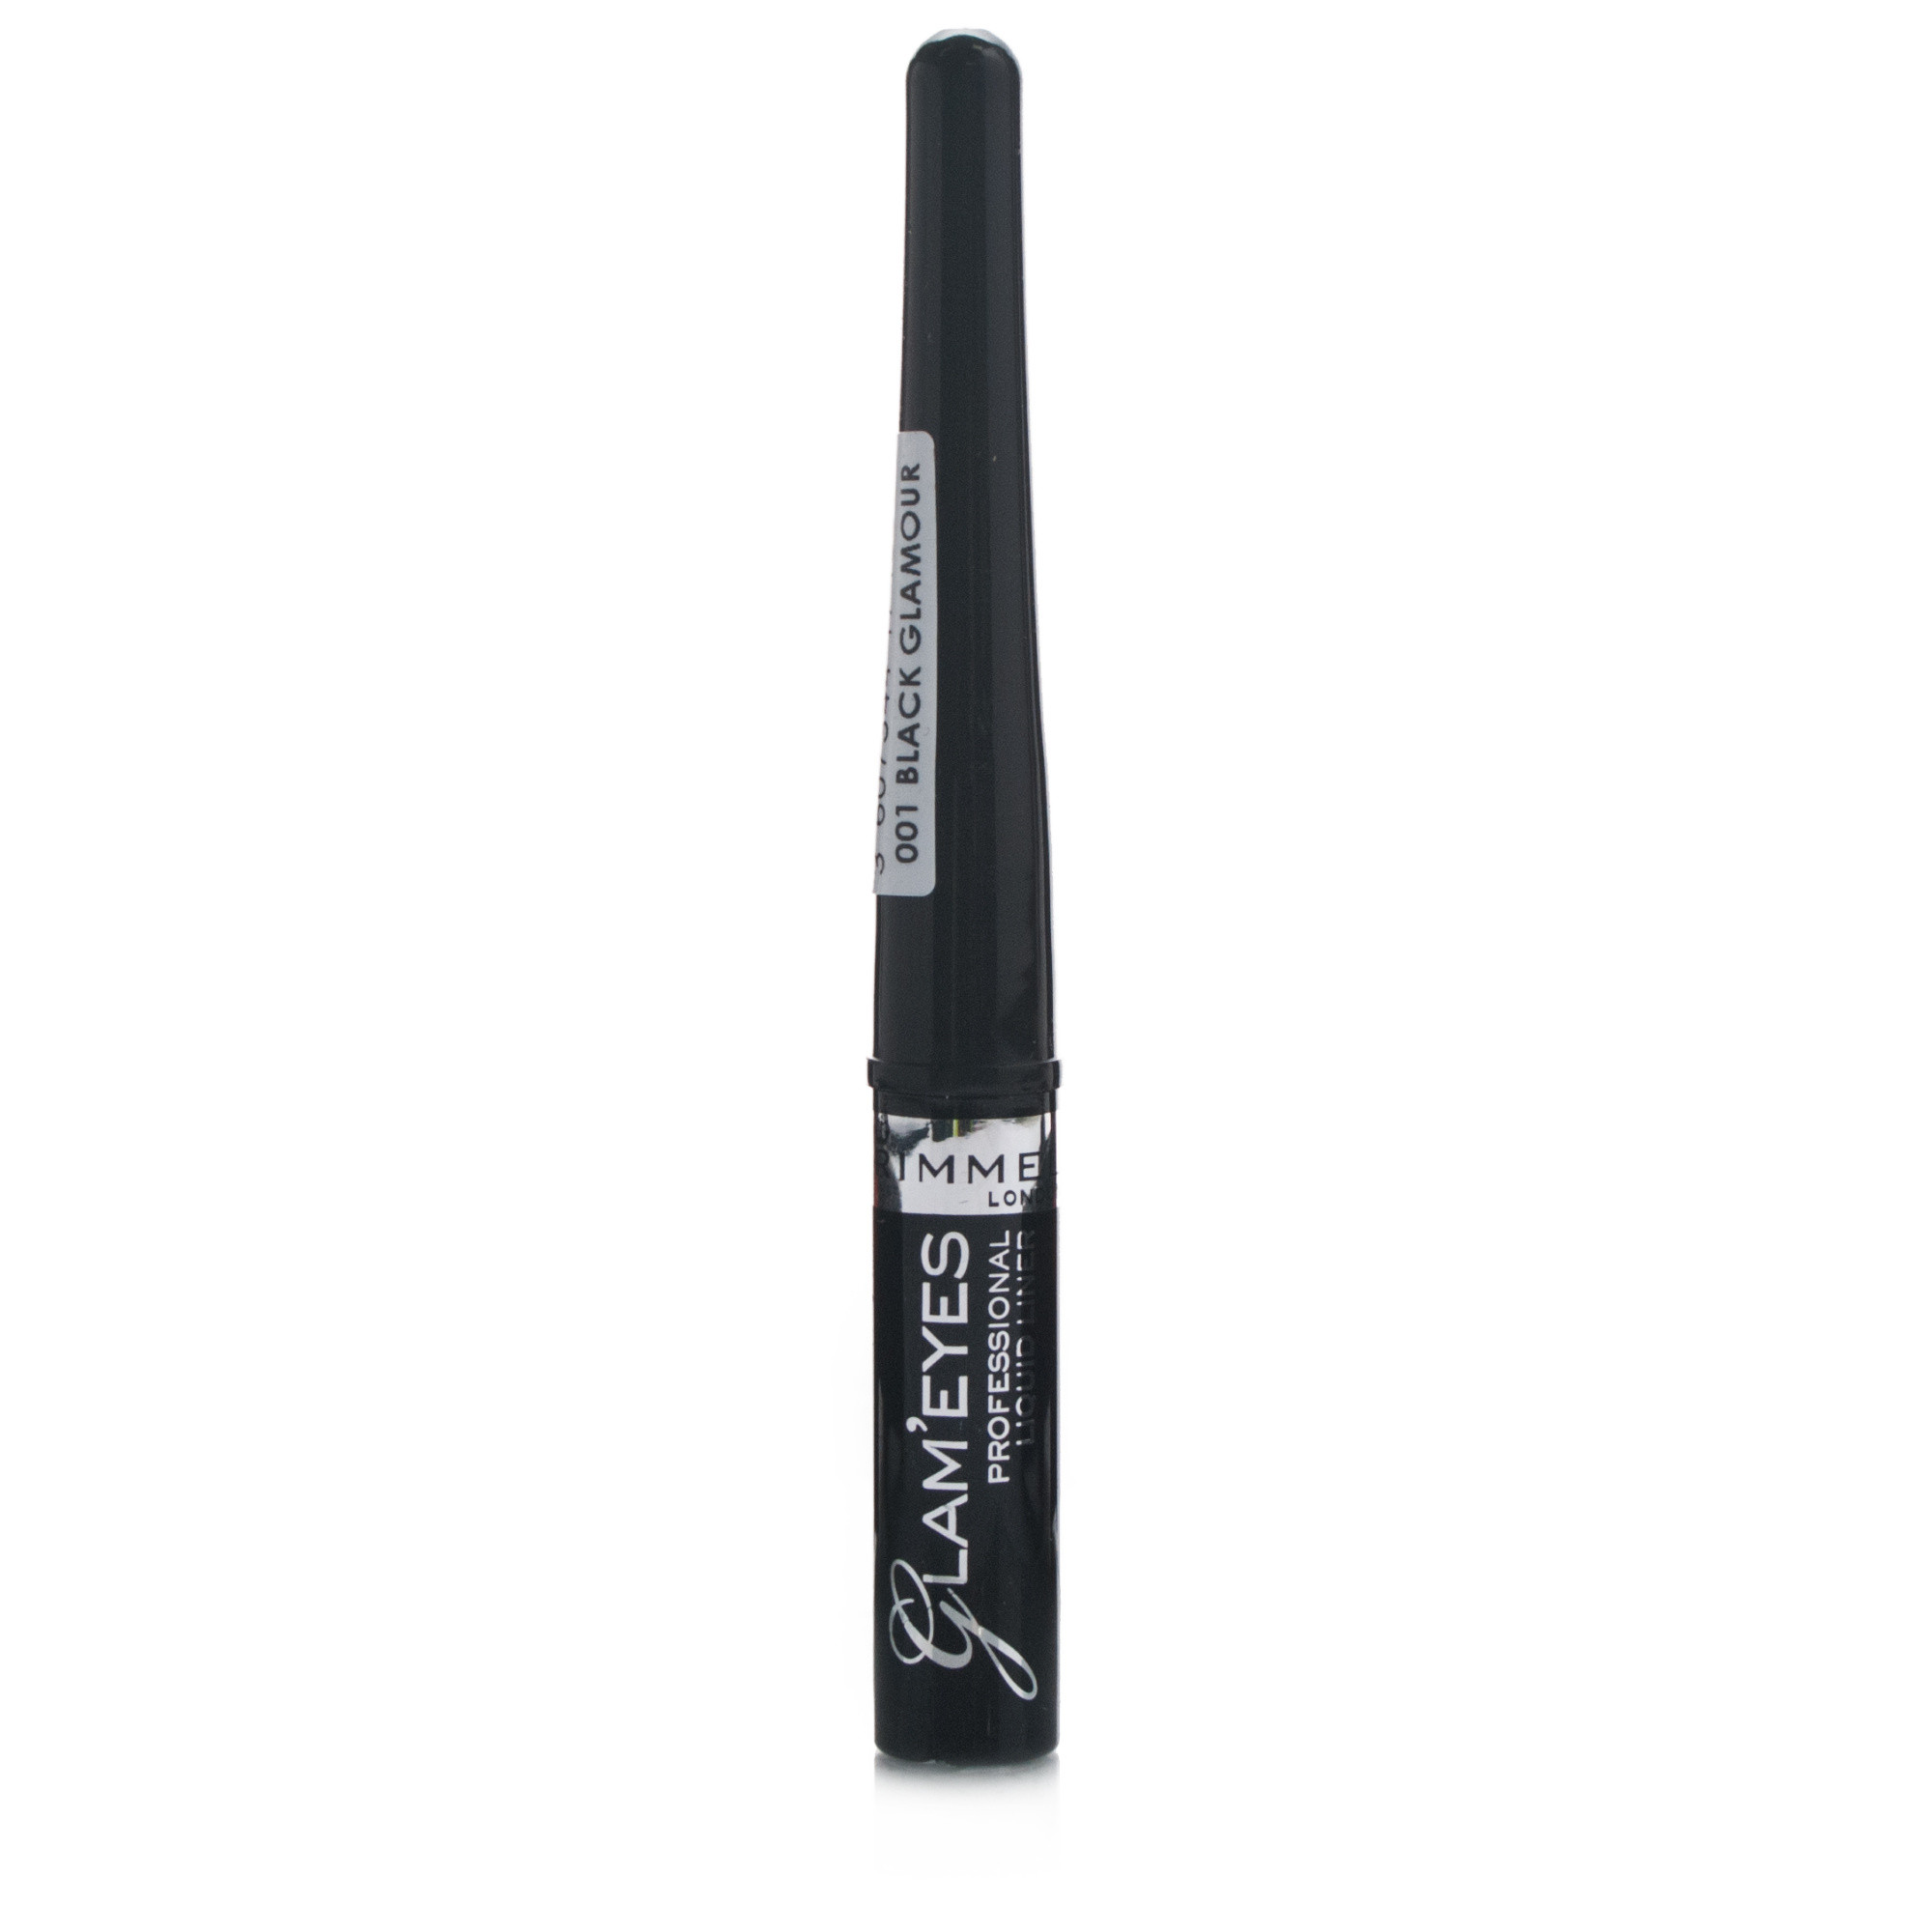 Rimmel Glam Eyes Professional Liquid Liner Pitch Black